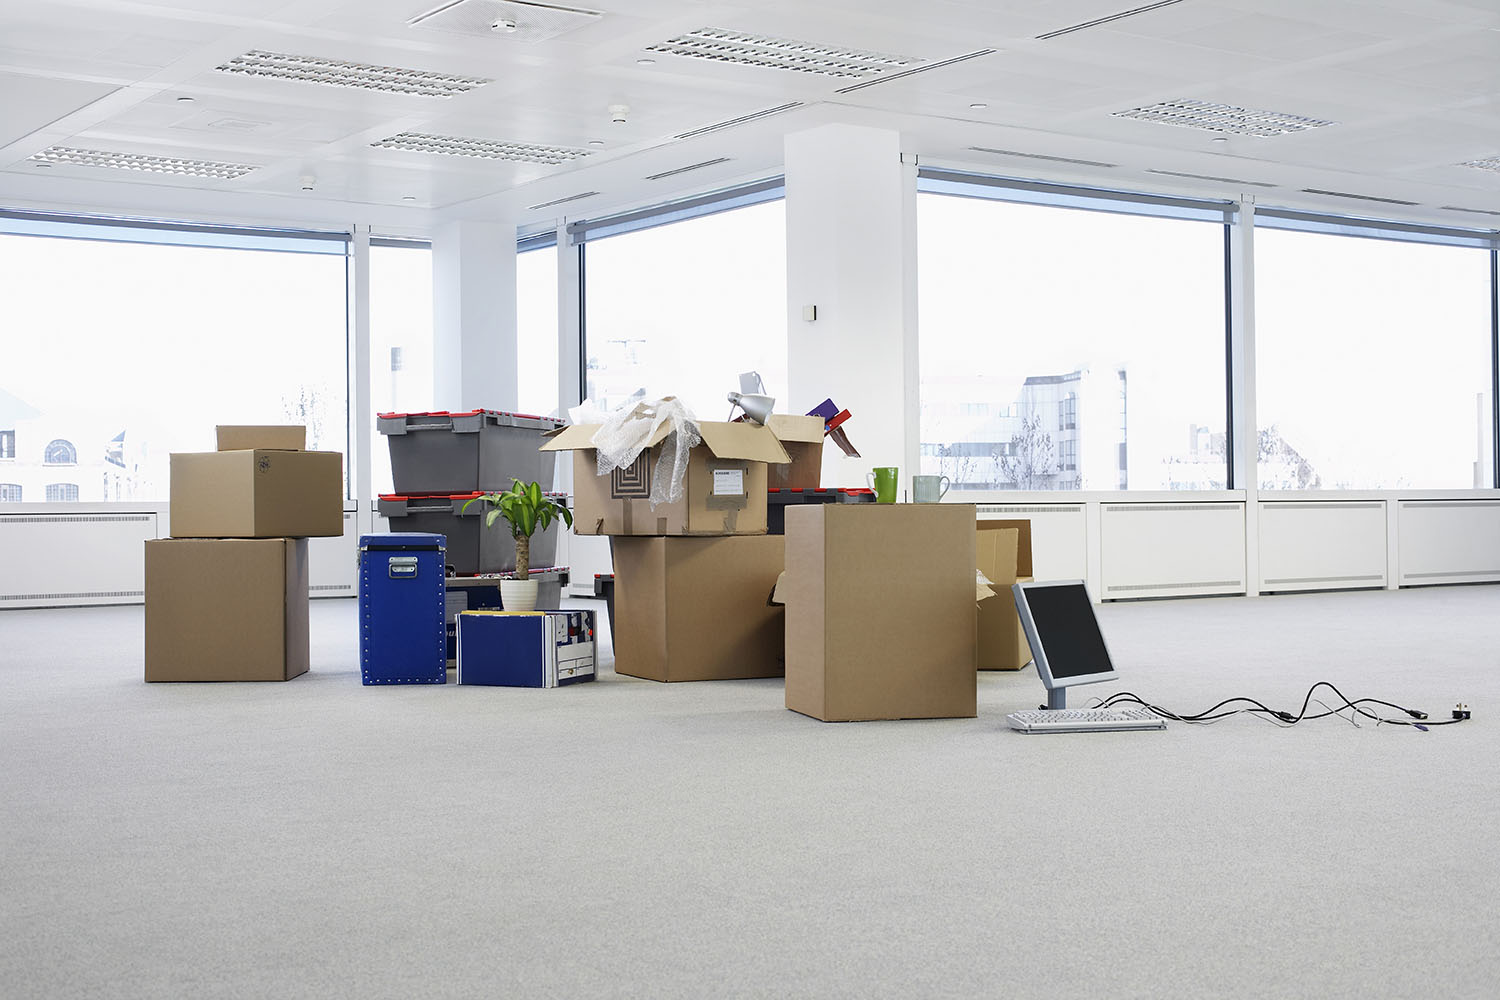 [:pl]Cartons and equipment on floor of empty office space[:]